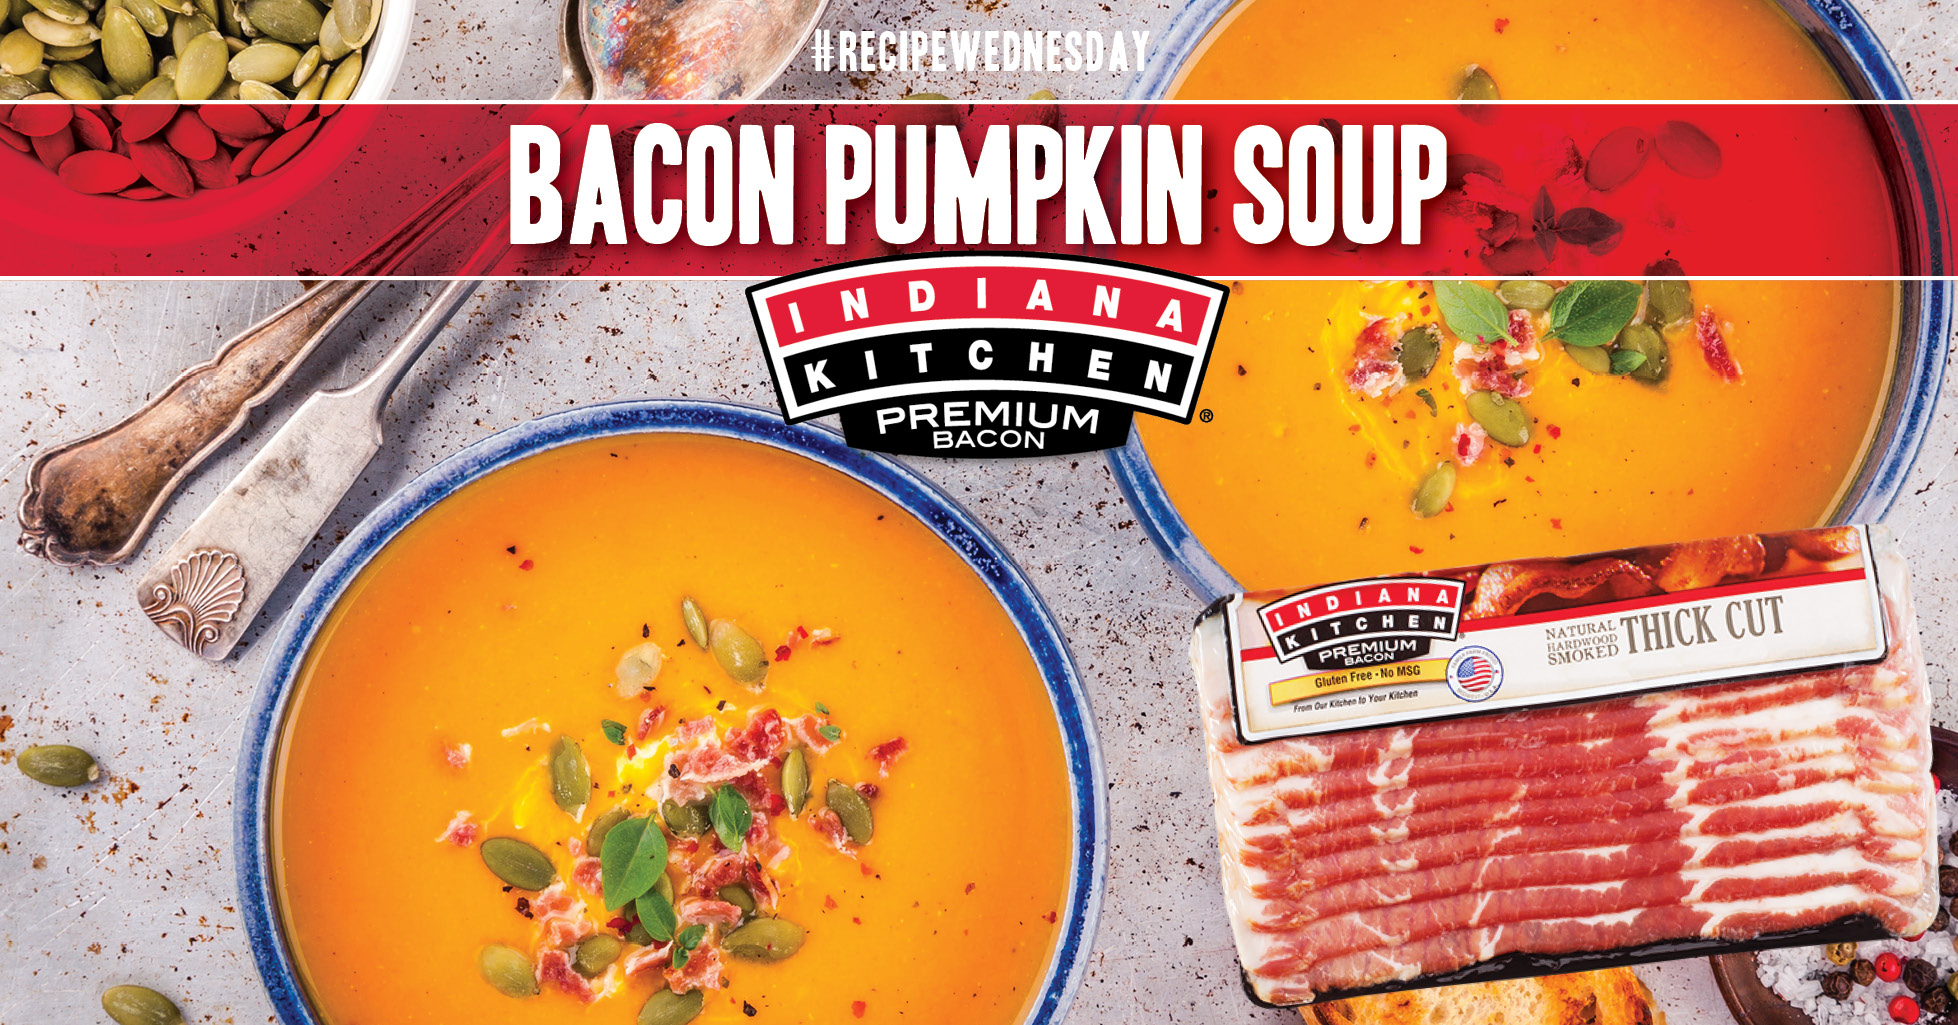 Pumpkin Soup with Bacon Recipe